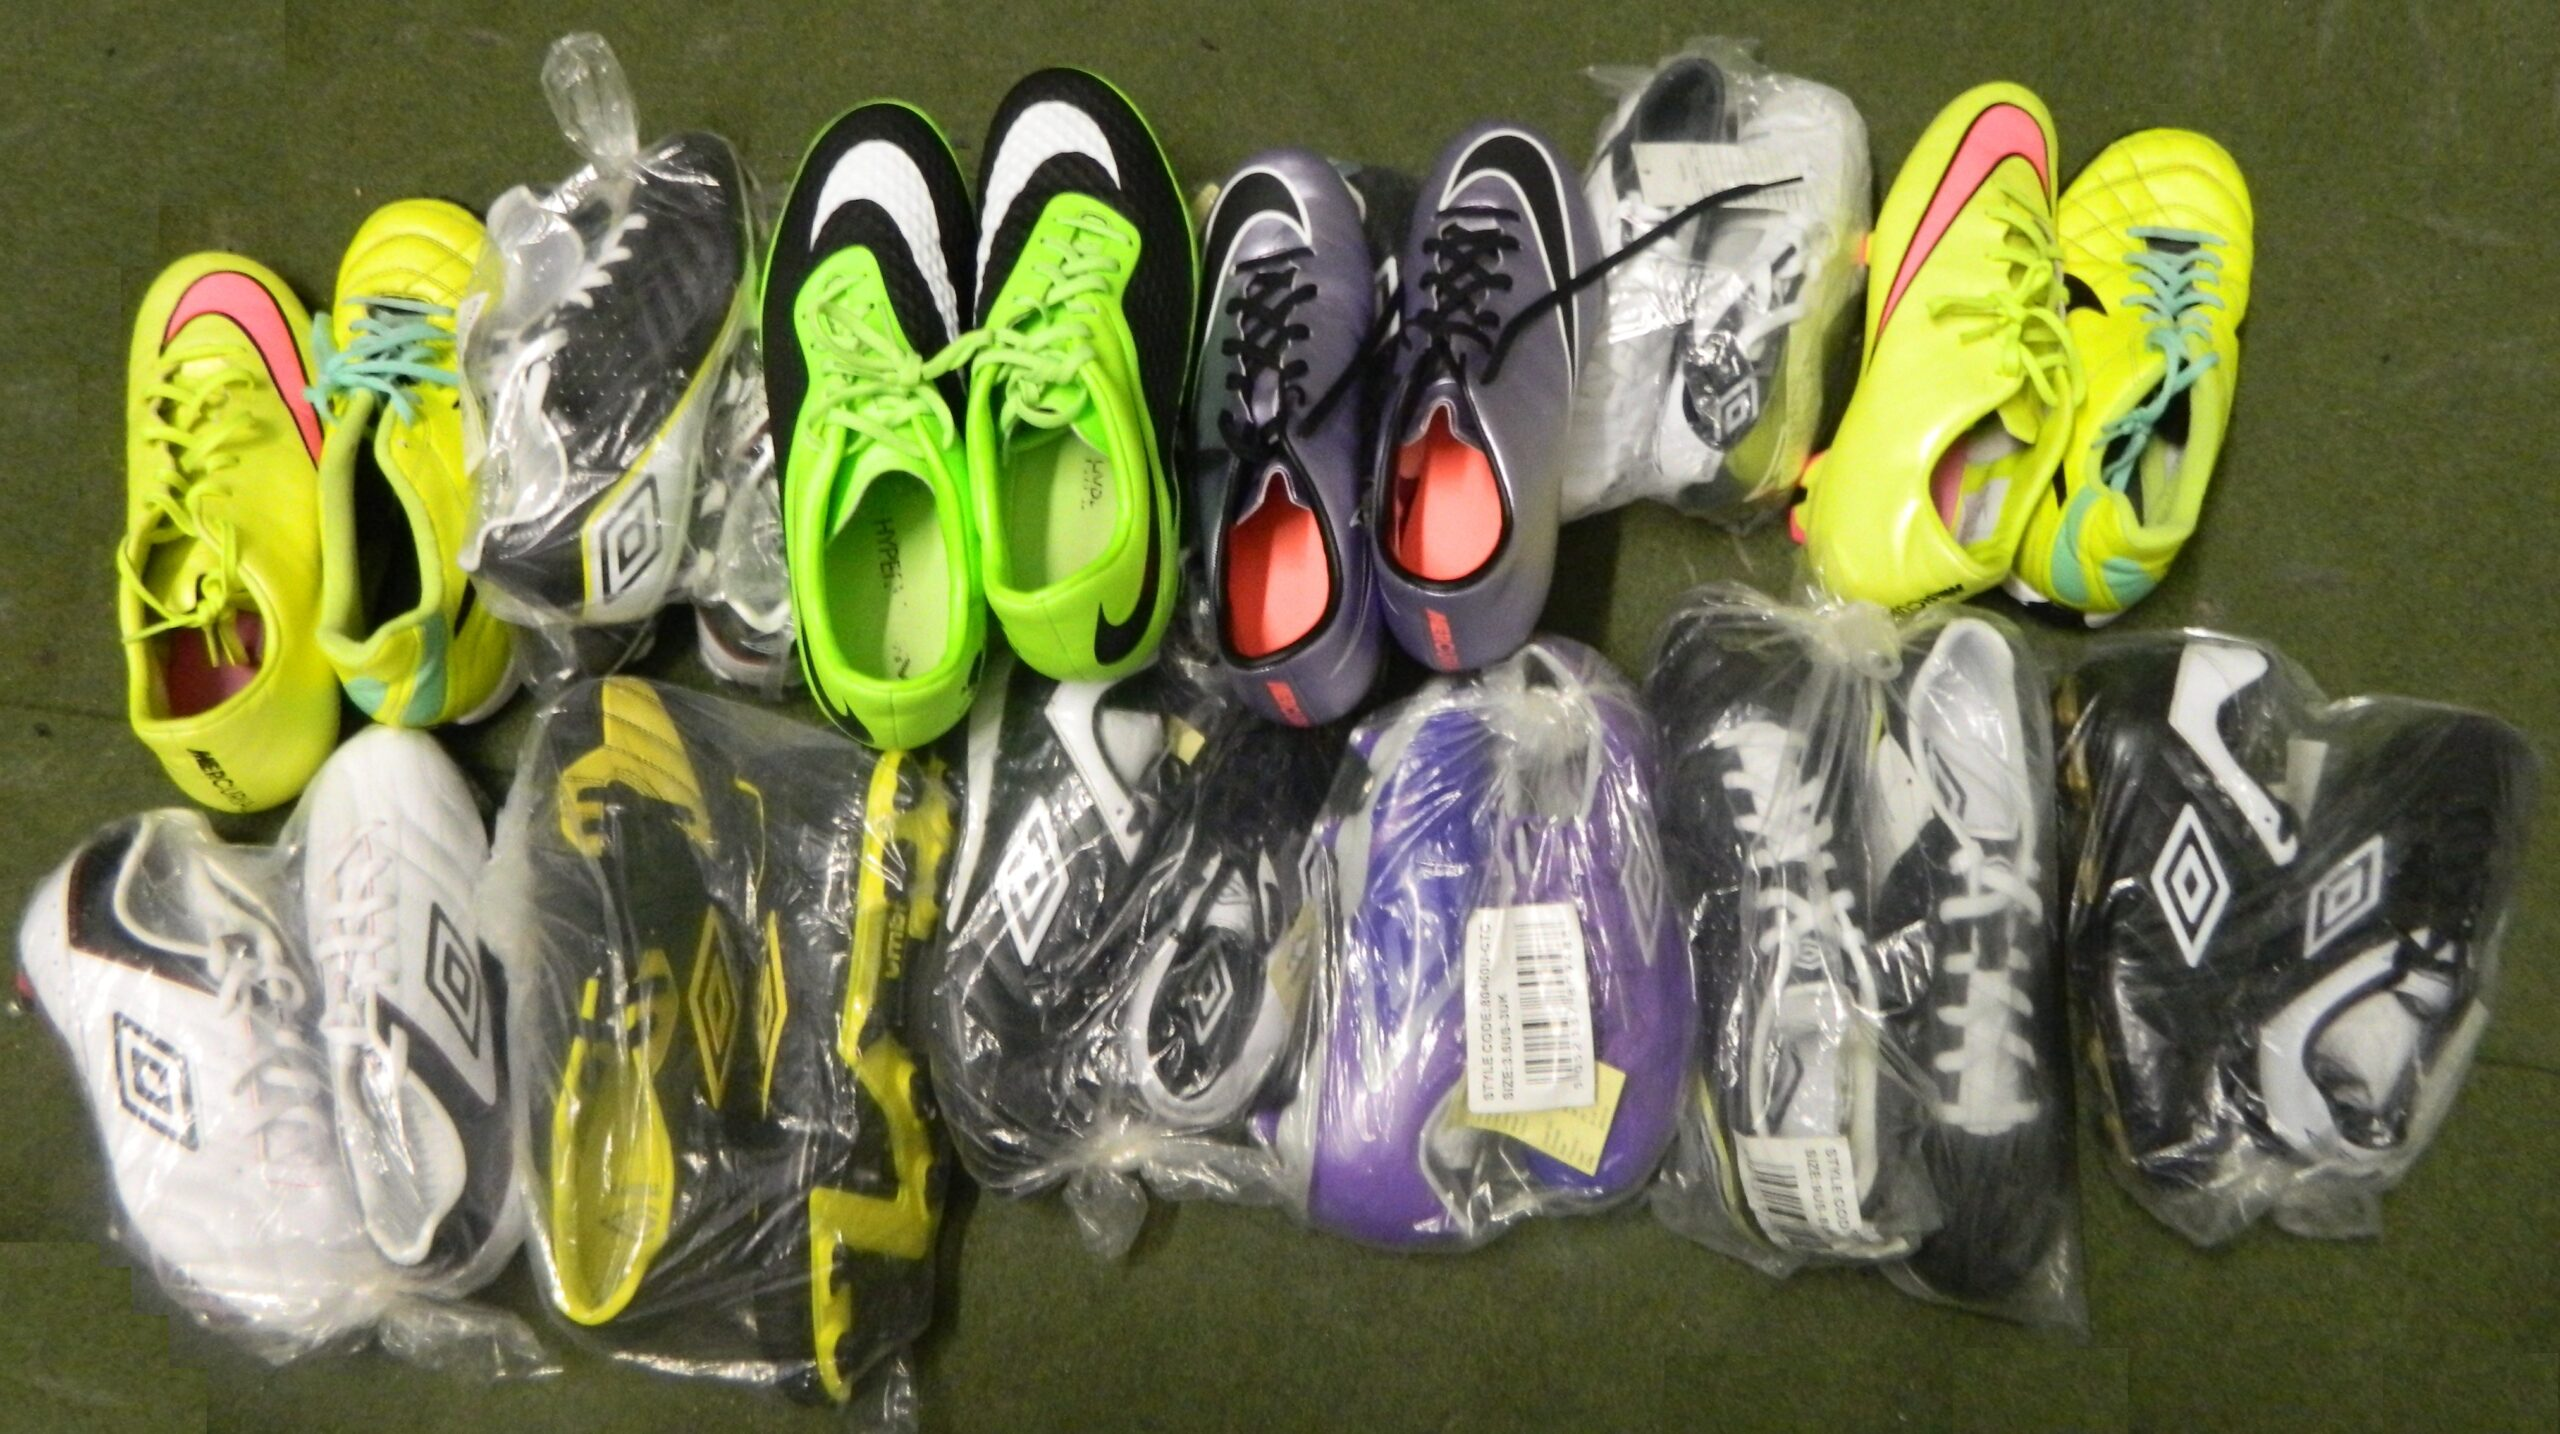 Thanks for the football boots!!!